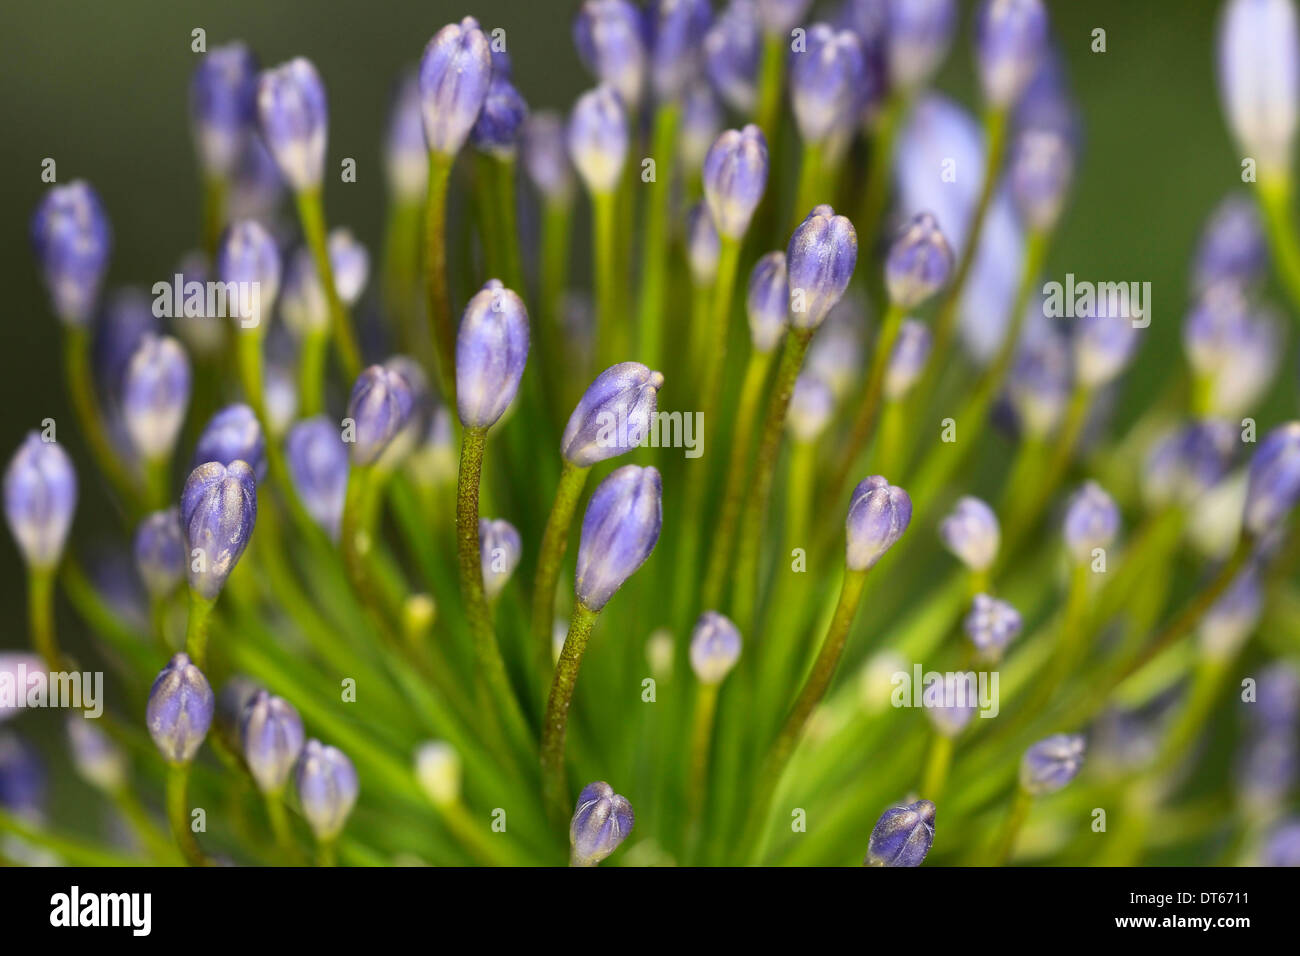 Lily of the nile agapanthus close up of purple flower buds stock lily of the nile agapanthus close up of purple flower buds izmirmasajfo